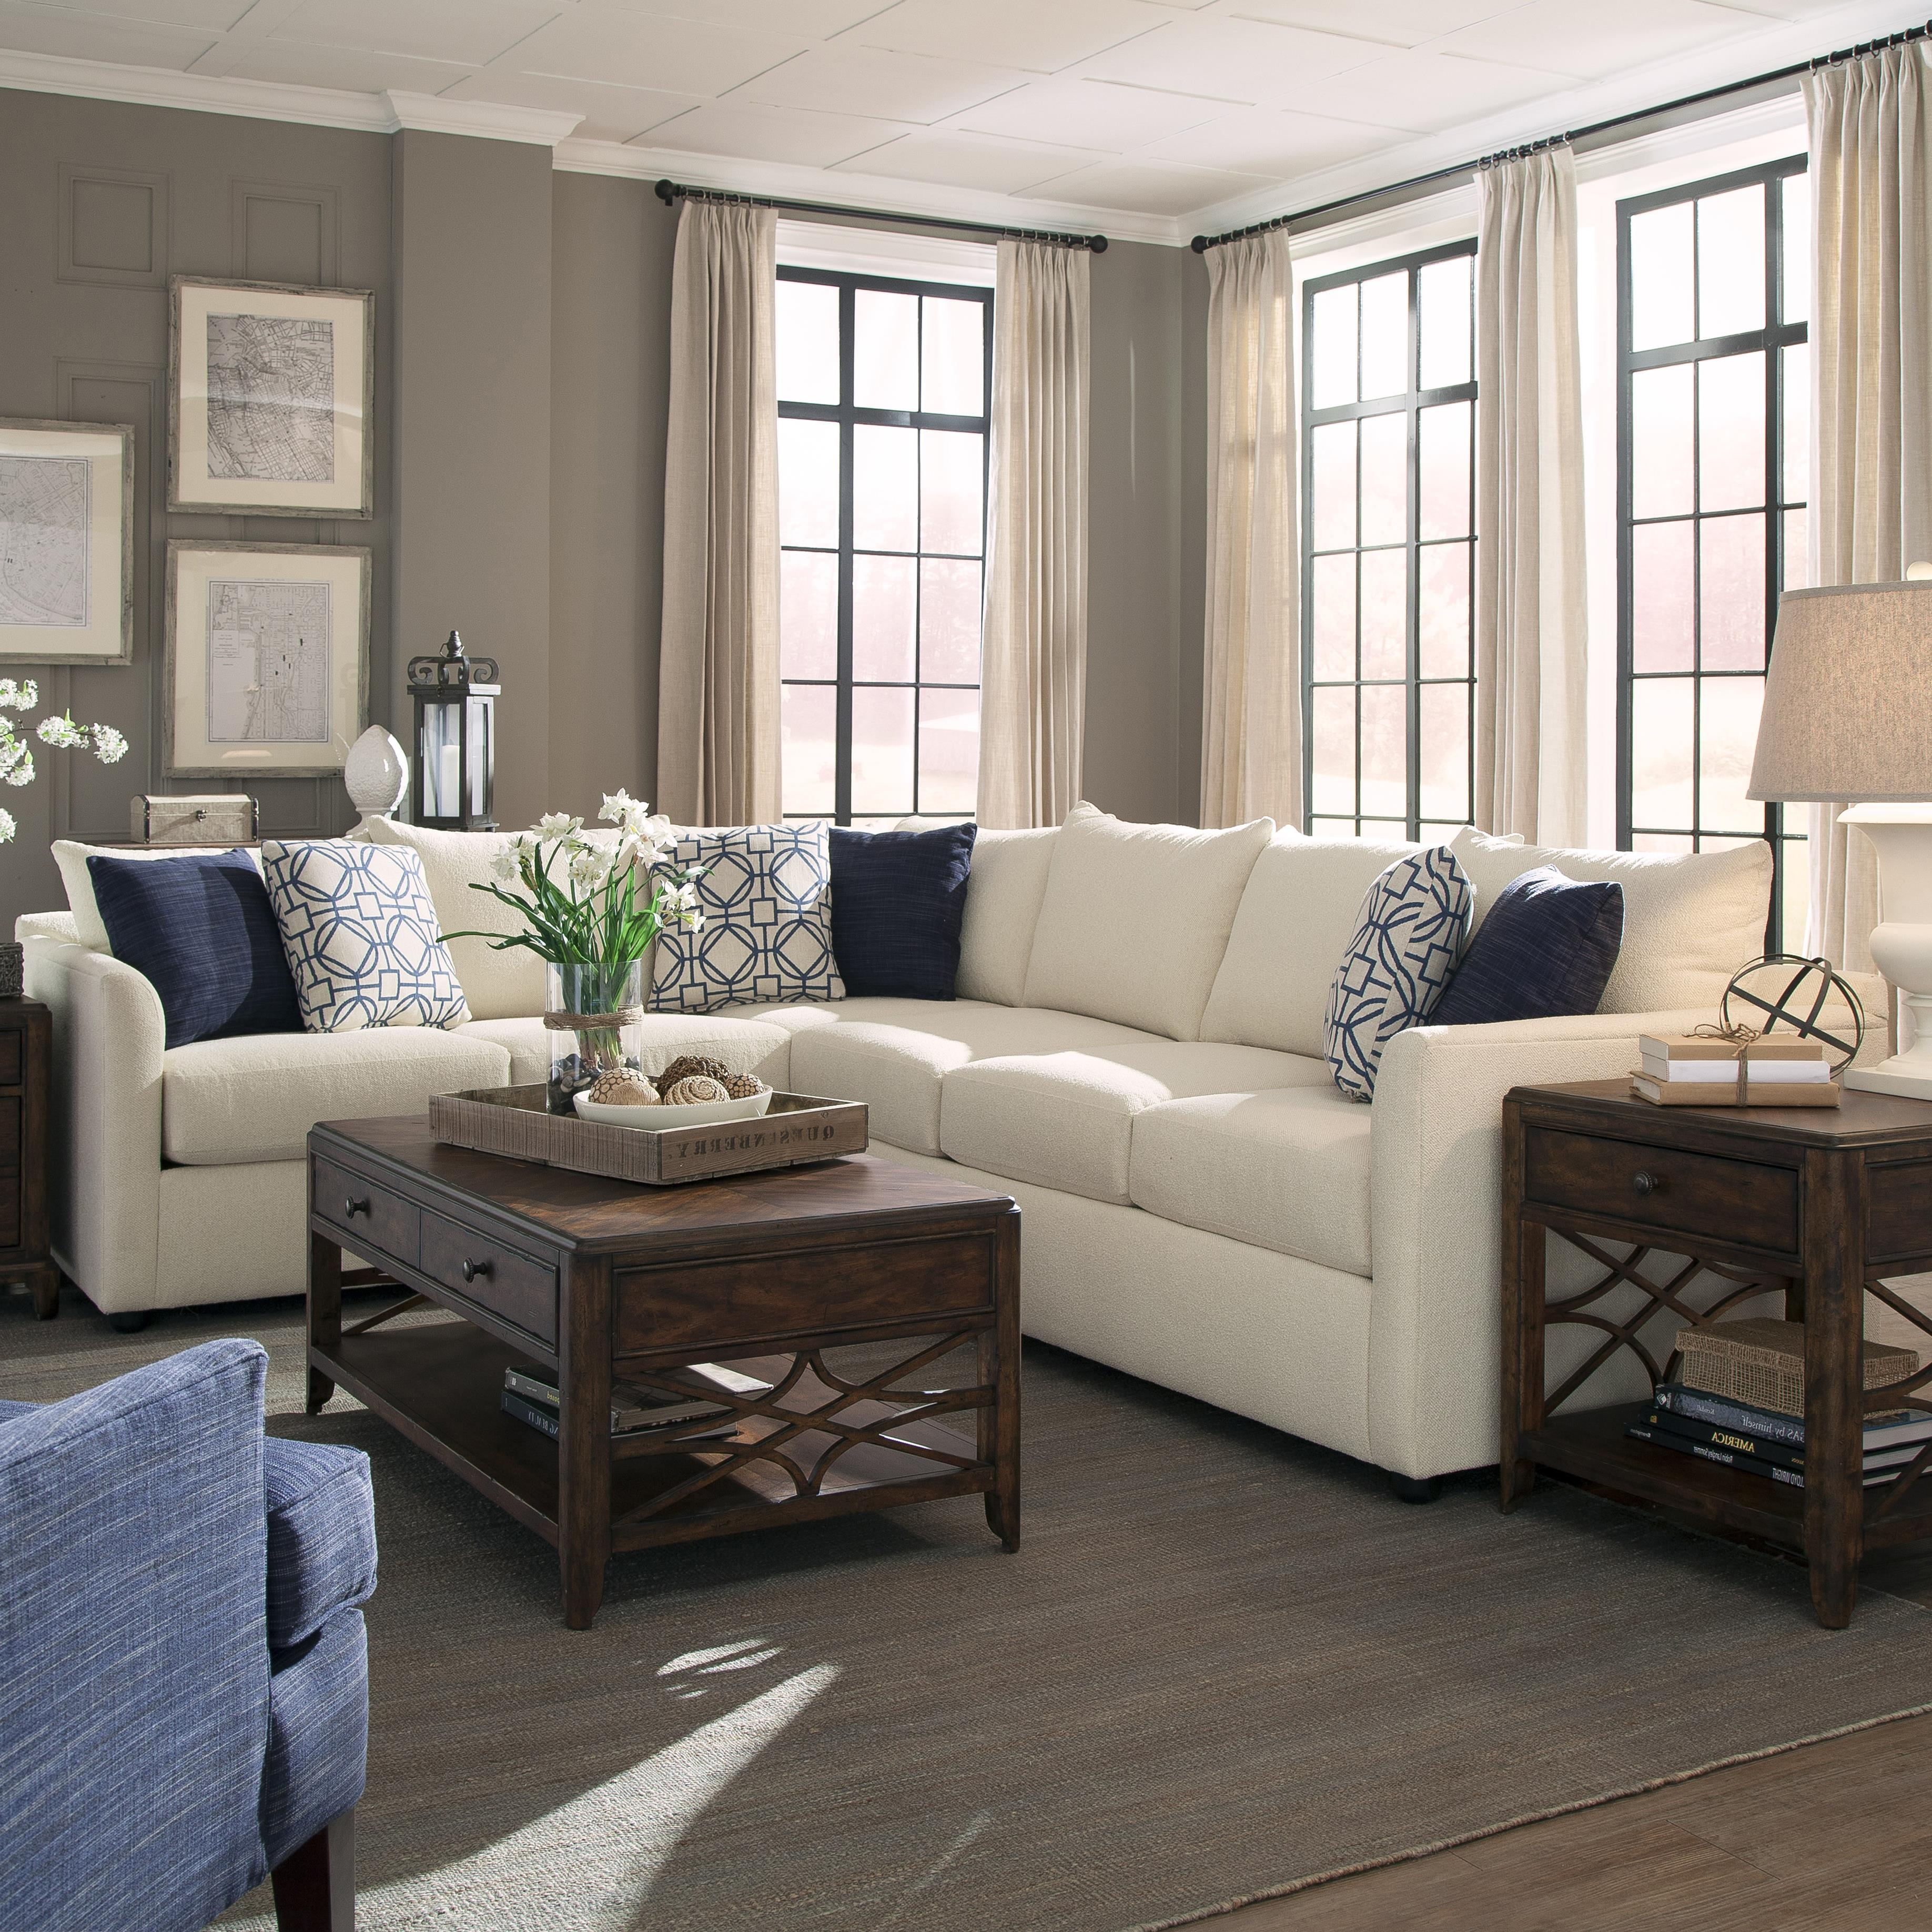 Home Outlet Furniture Okc: Transitional Sectional Sofa With Tuxedo Arms By Trisha